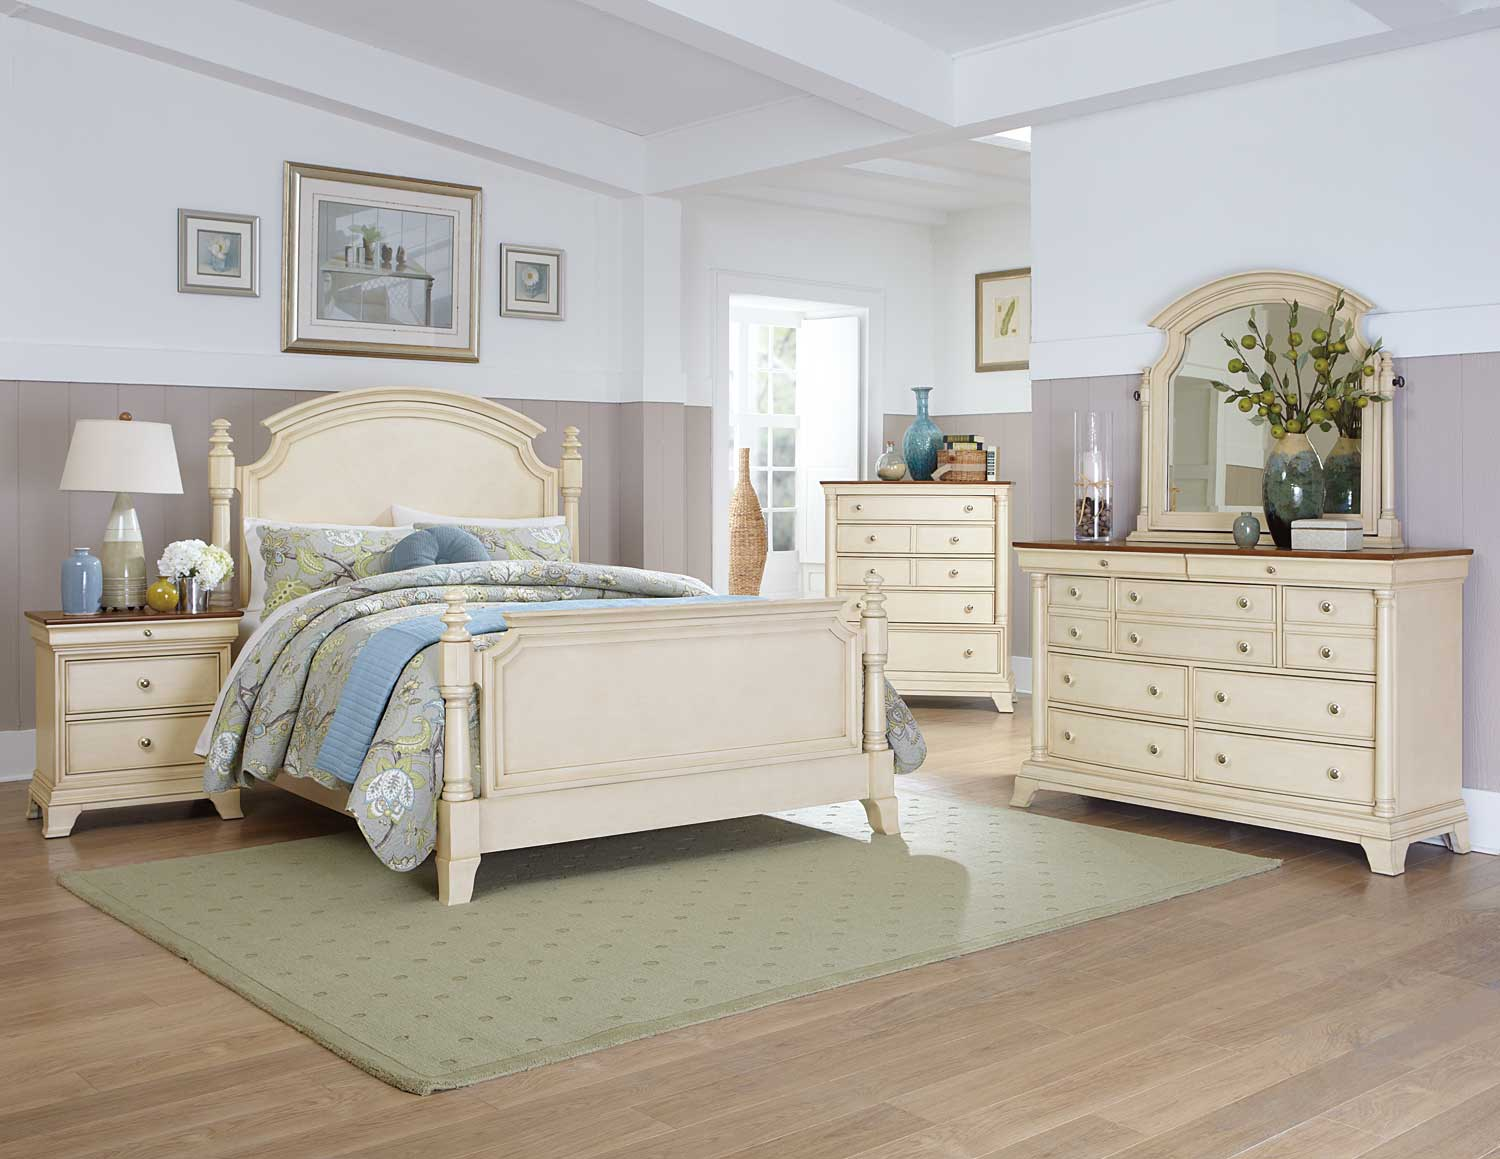 Homelegance inglewood ii bedroom set white b1402w bed for Elegant white bedroom furniture